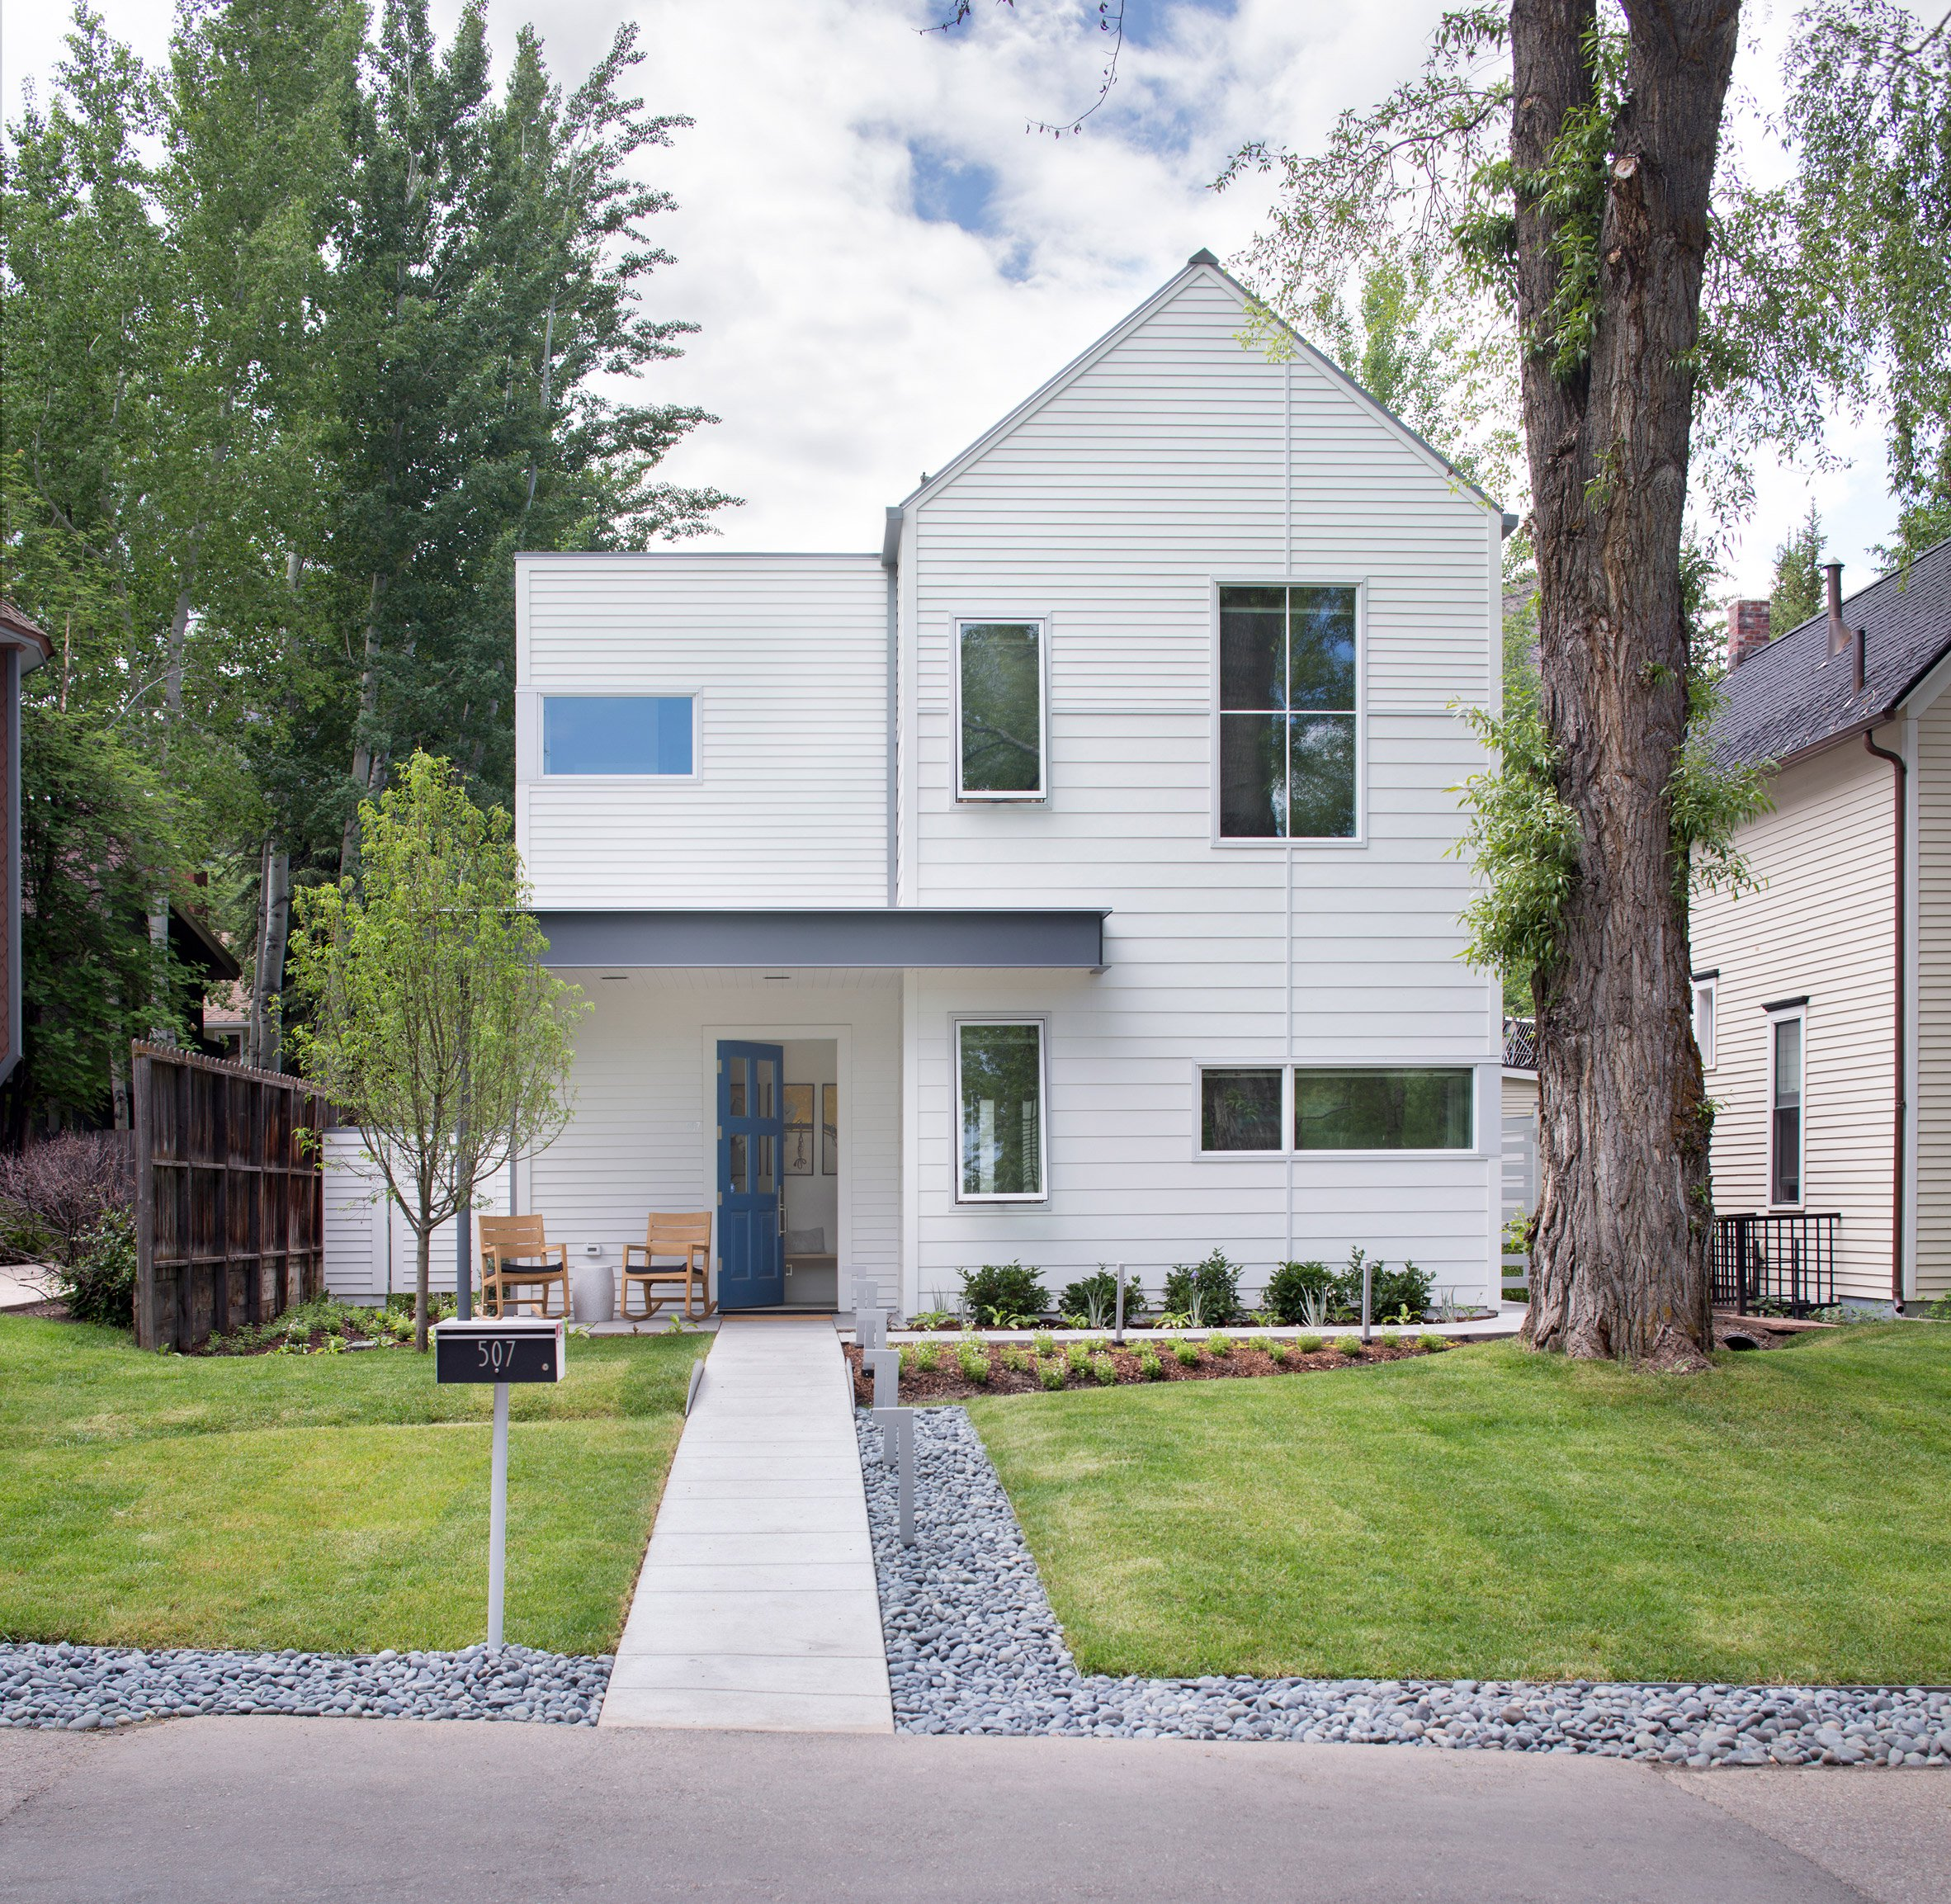 Game On home in Aspen by Rowland + Broughton takes cues from historic neighbours